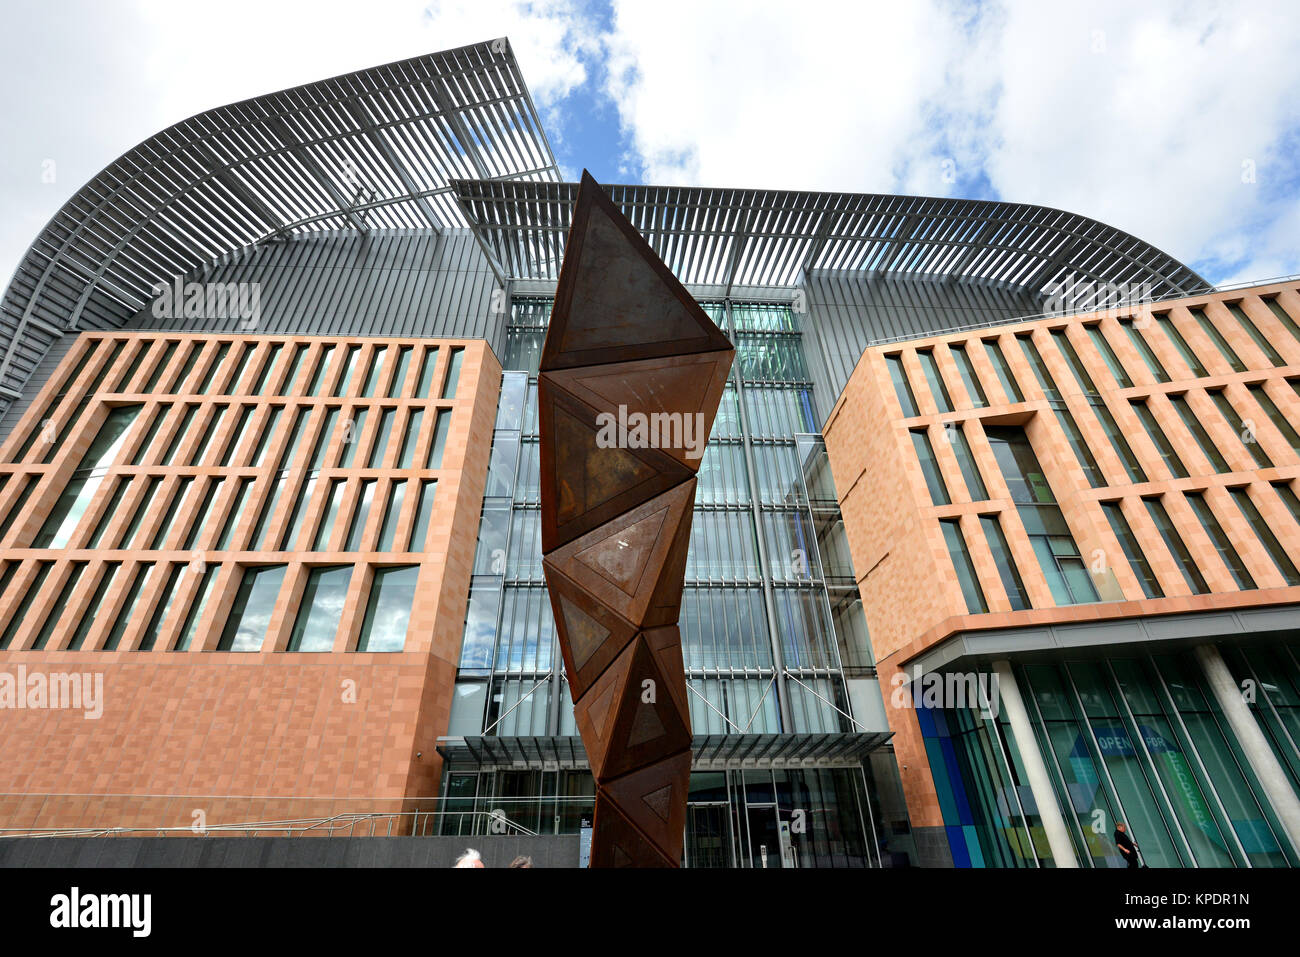 Francis Crick Institute, formerly the UK Centre for Medical Research and Innovation, biomedical research centre - Stock Image